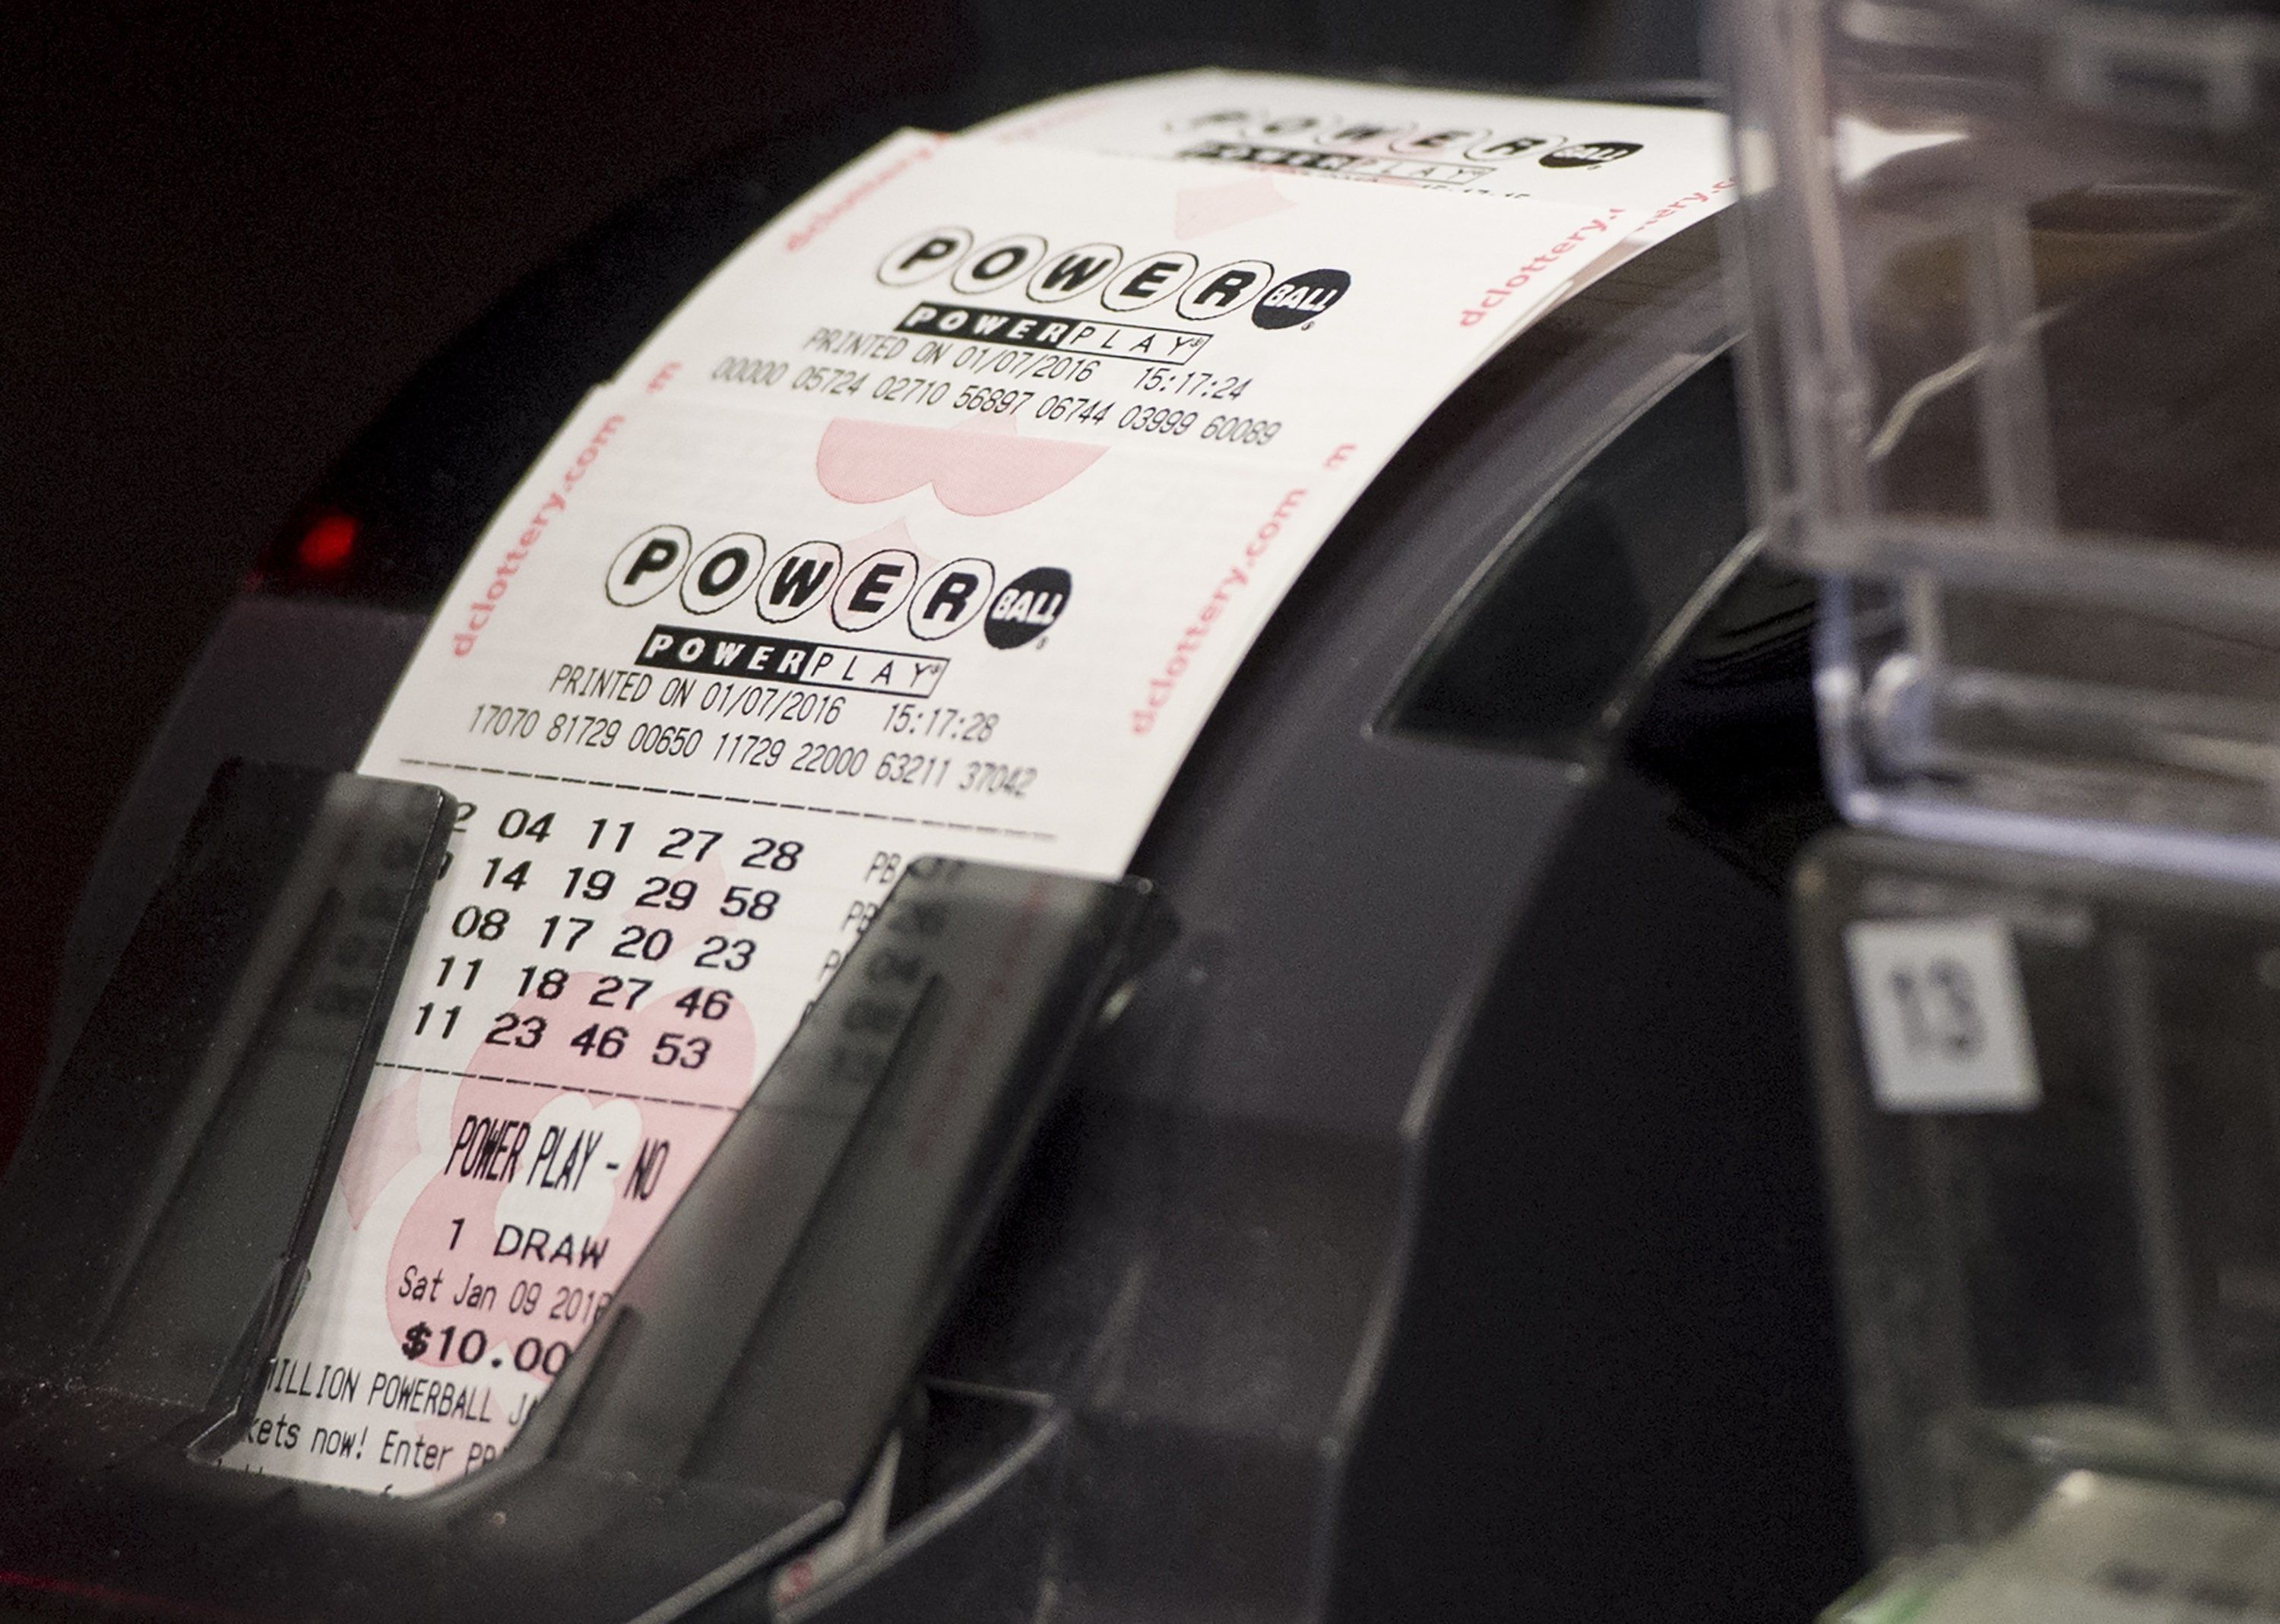 A machine prints Powerball lottery tickets at a convenience store in Washington, DC, January 7, 2016. Lottery officials predict Saturday's jackpot will reach $700 million, the largest in history. AFP PHOTO / SAUL LOEB / AFP / SAUL LOEB        (Photo credit should read SAUL LOEB/AFP/Getty Images)